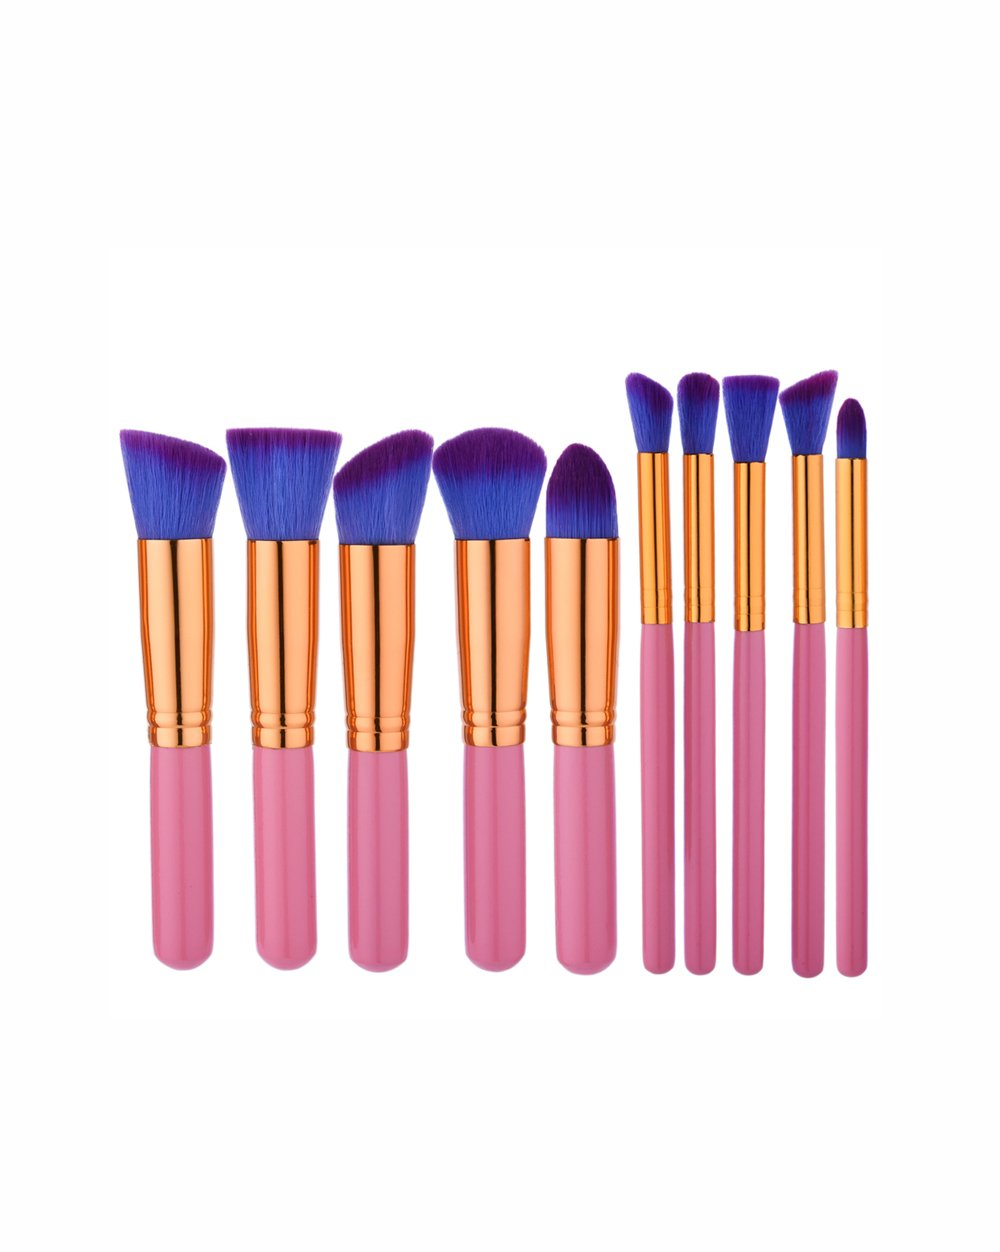 COLOR POP TRAVEL BRUSH SET - PINK/BLUE